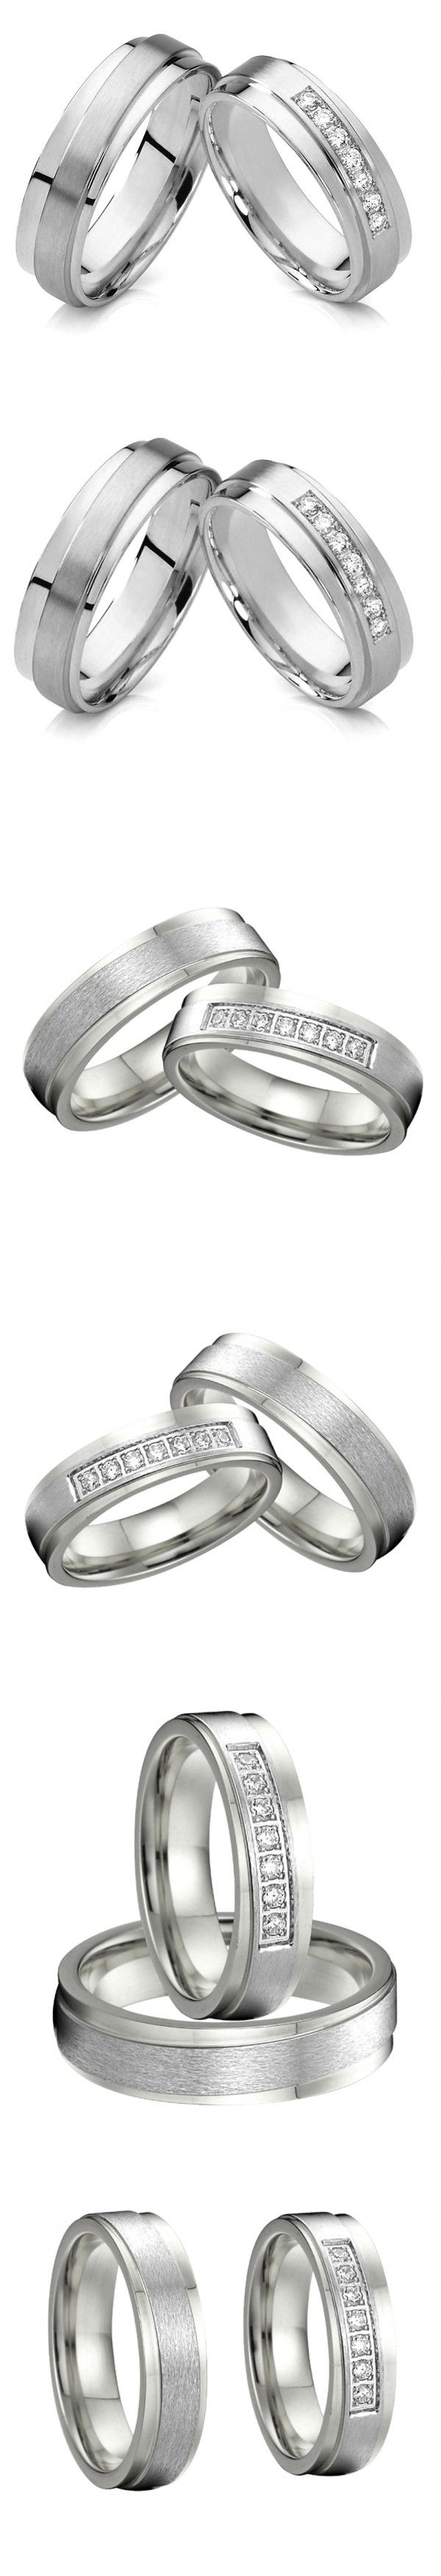 34 best Wedding Rings images on Pinterest